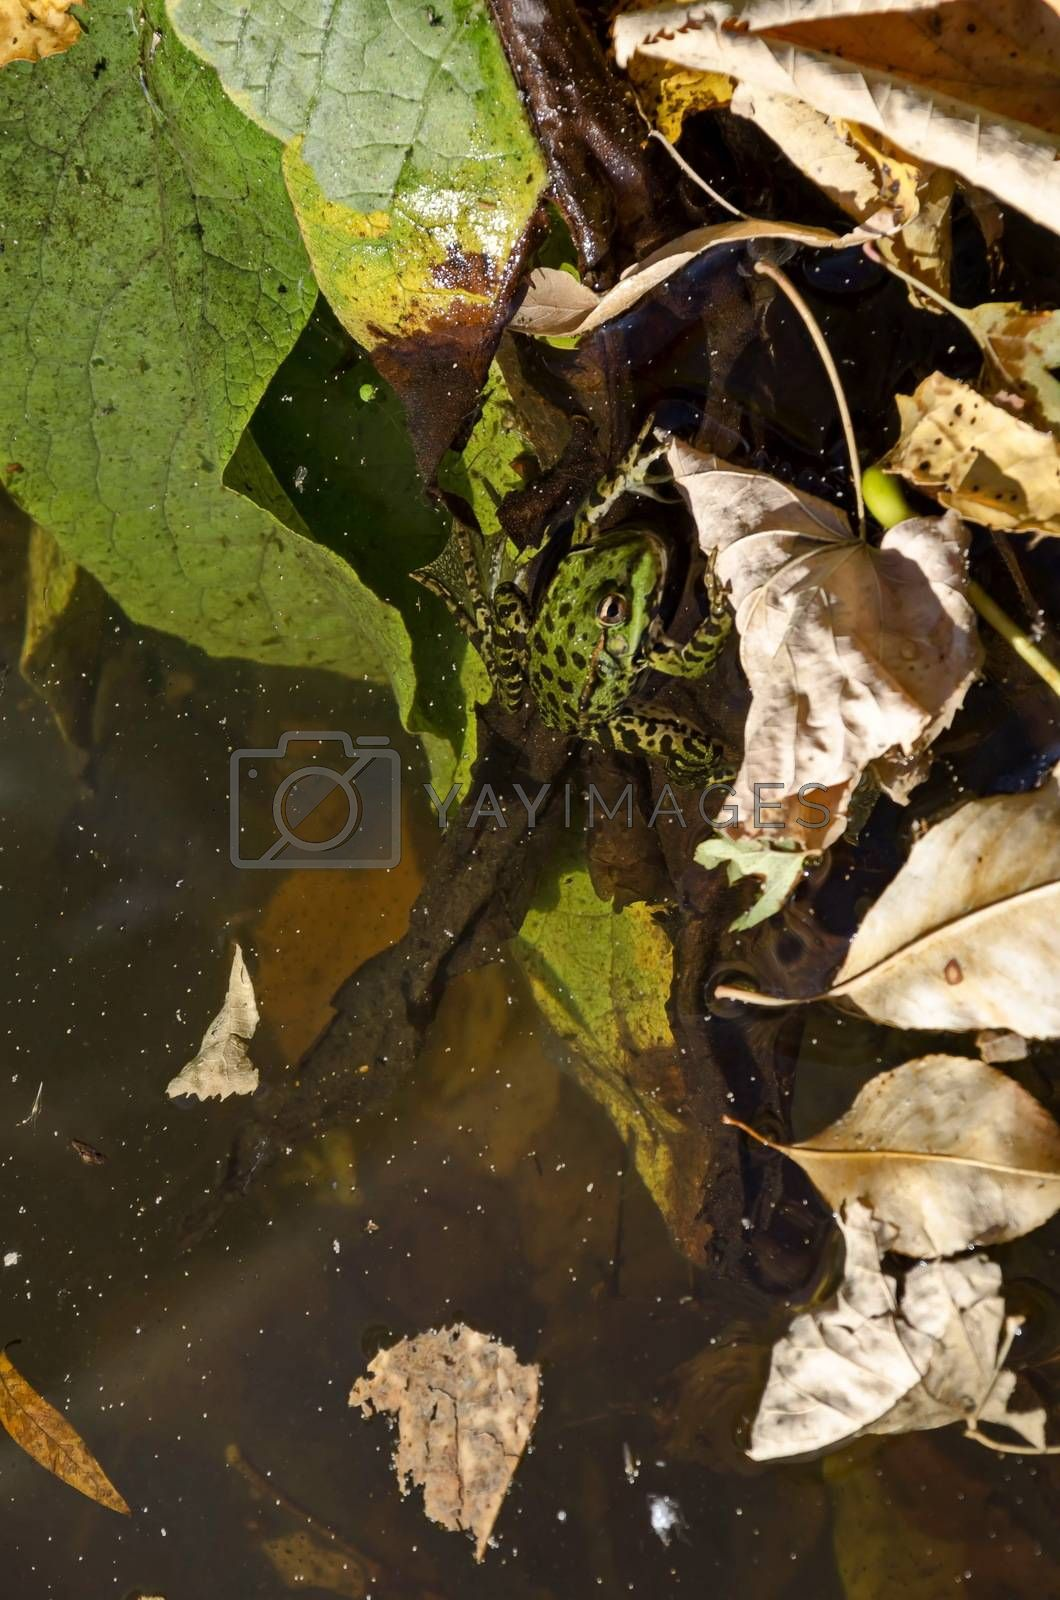 Lake with colorful autumn leaves and a green frog or Rana in the water, Vrana park, Sofia, Bulgaria